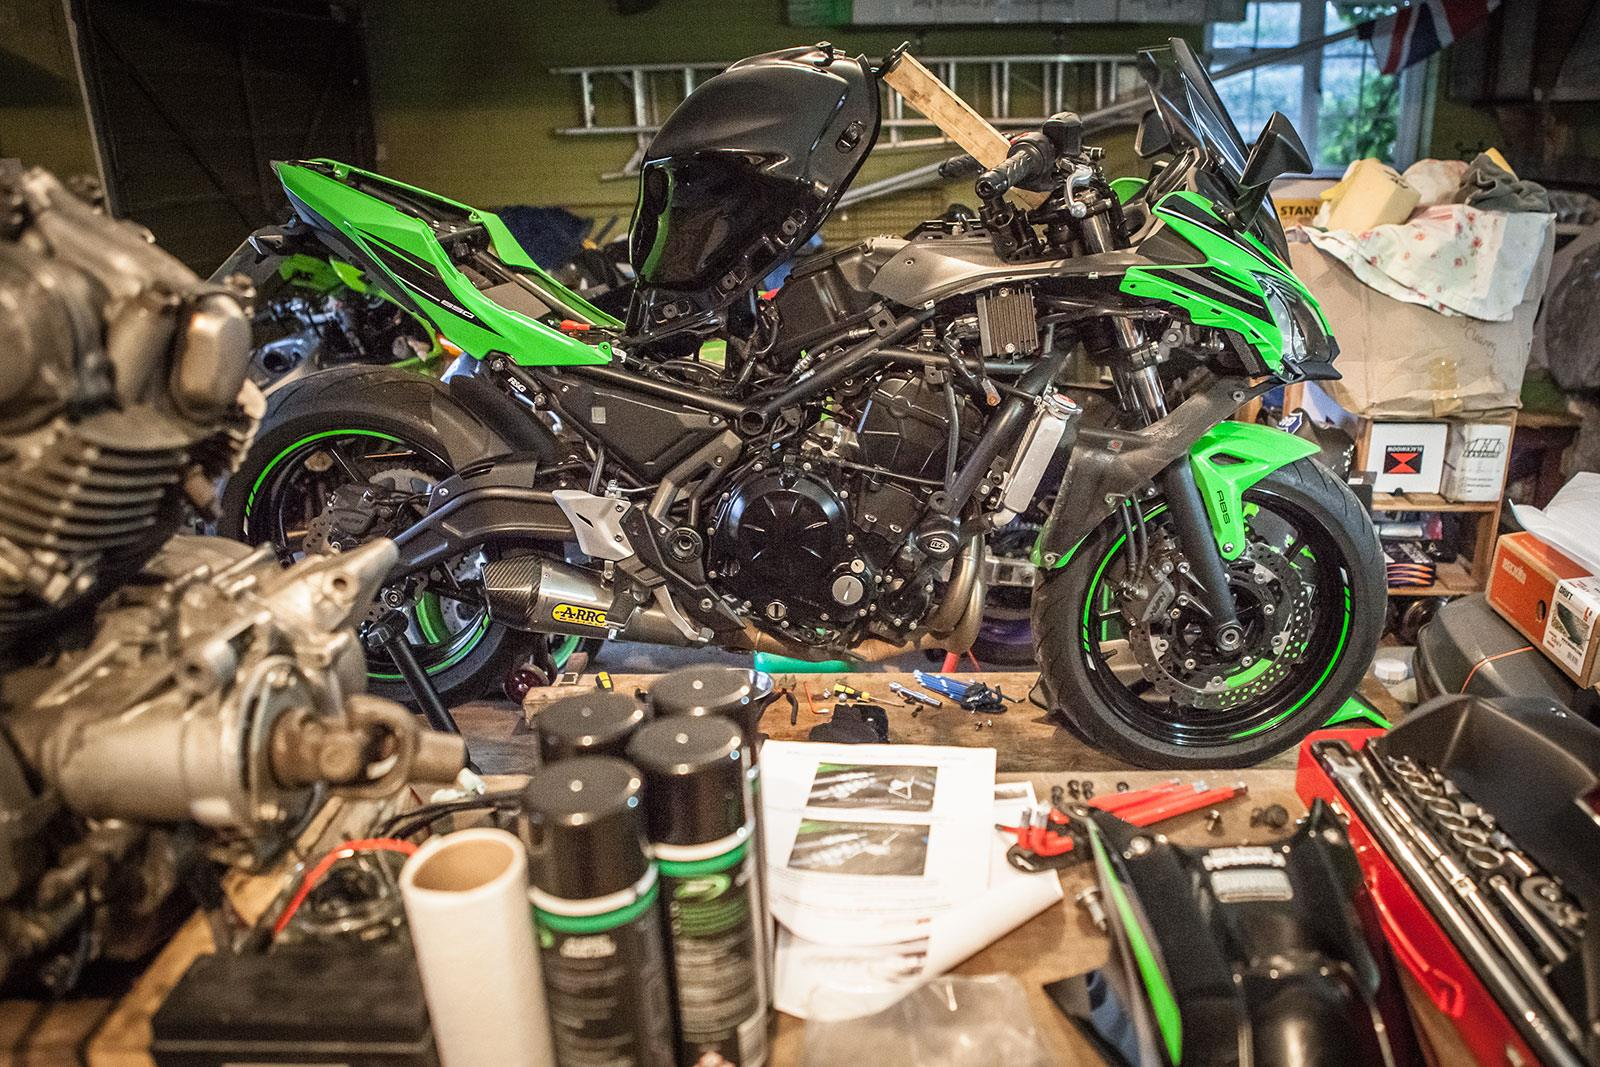 Kawasaki Ninja 650 on the workbench